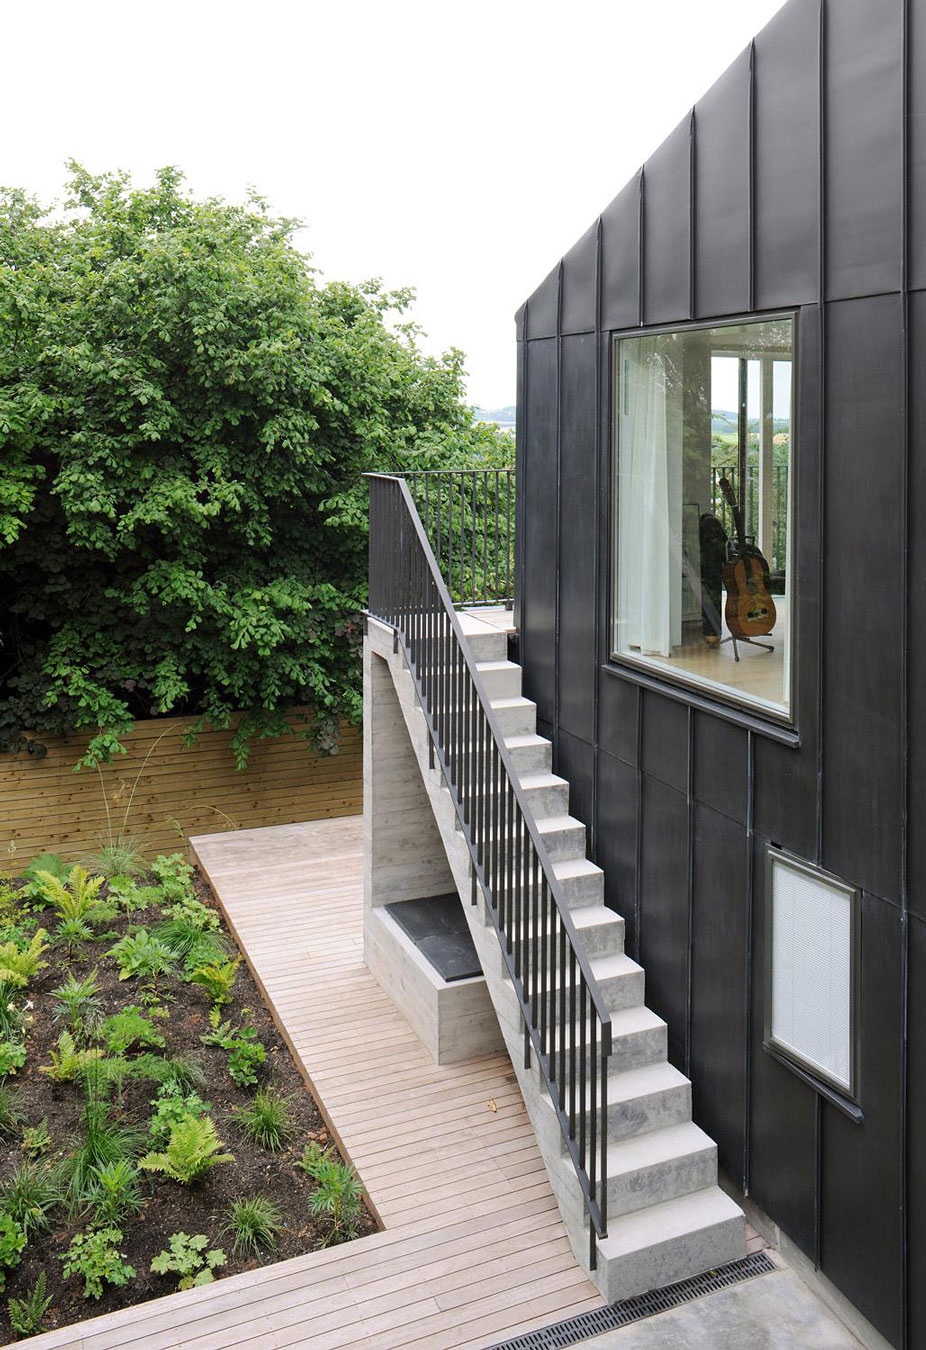 Modern Outdoor Stair Railing Designs And Ideas That ... on Backyard Stairs Ideas id=31300